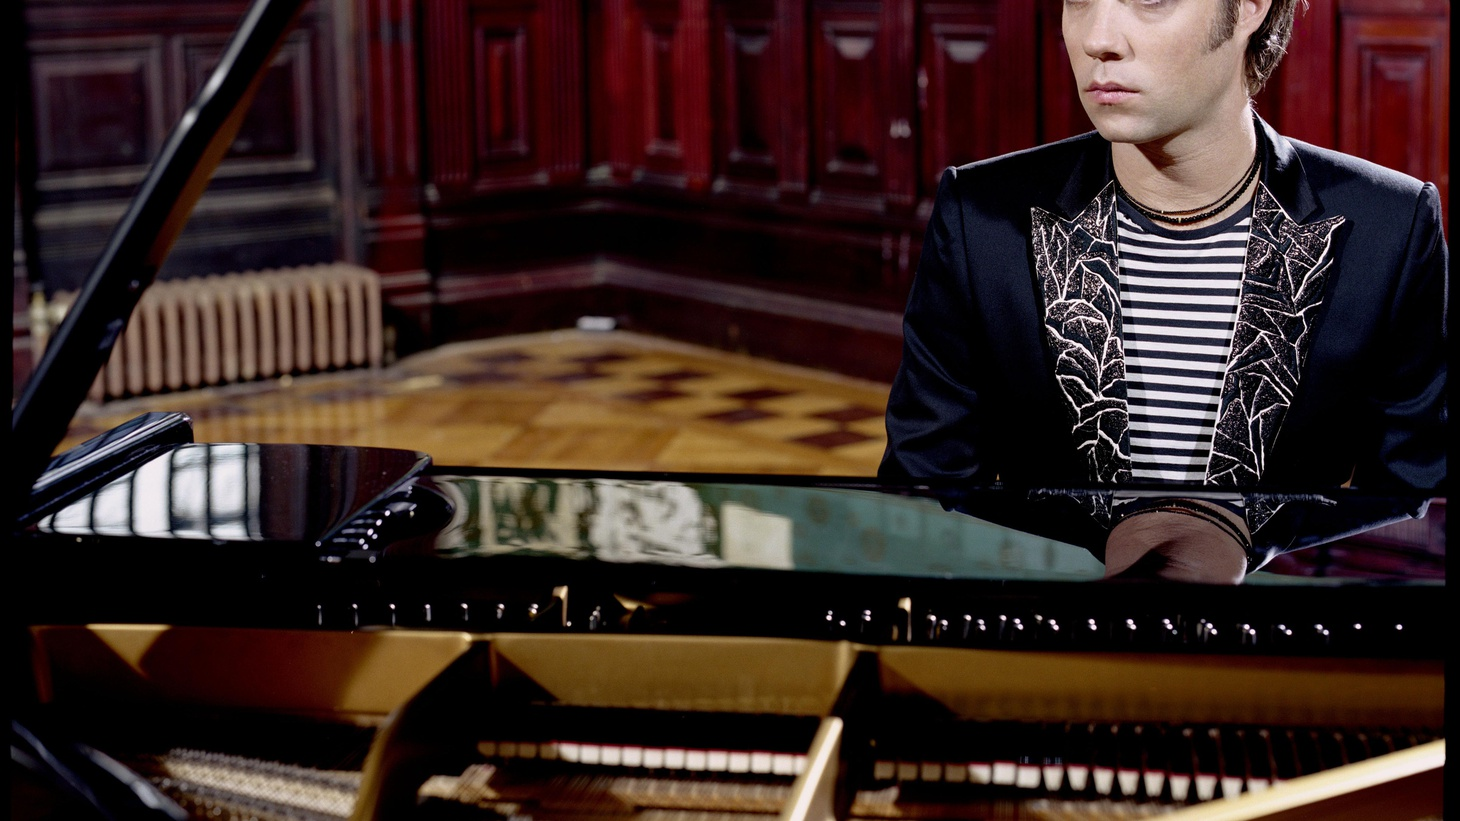 After writing his first opera, renowned singer-songwriter Rufus Wainwright returns to our studio to perform songs from his new album, All Days Are Nights: Songs for Lulu on our piano. He joins us on Morning Becomes Eclectic at 11:15am.